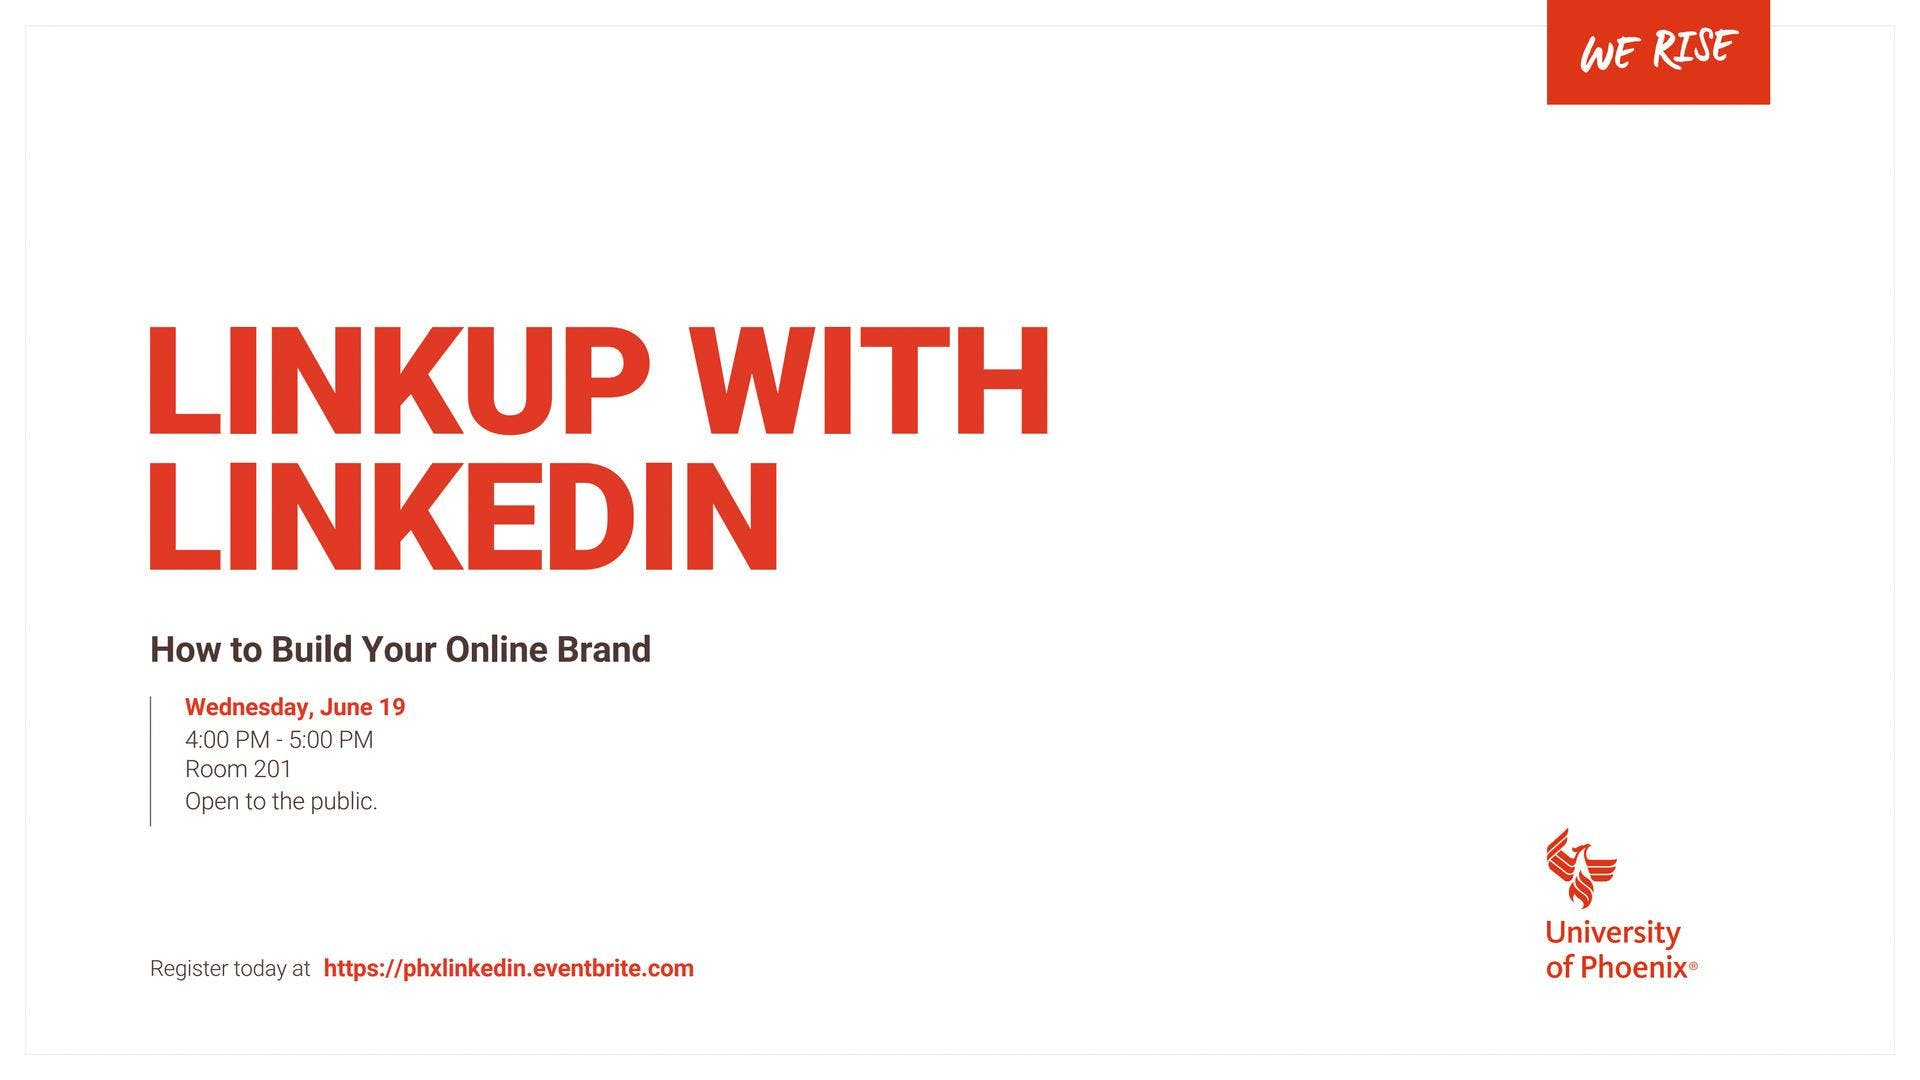 LinkUp with LinkedIn: How to Build Your Online Brand